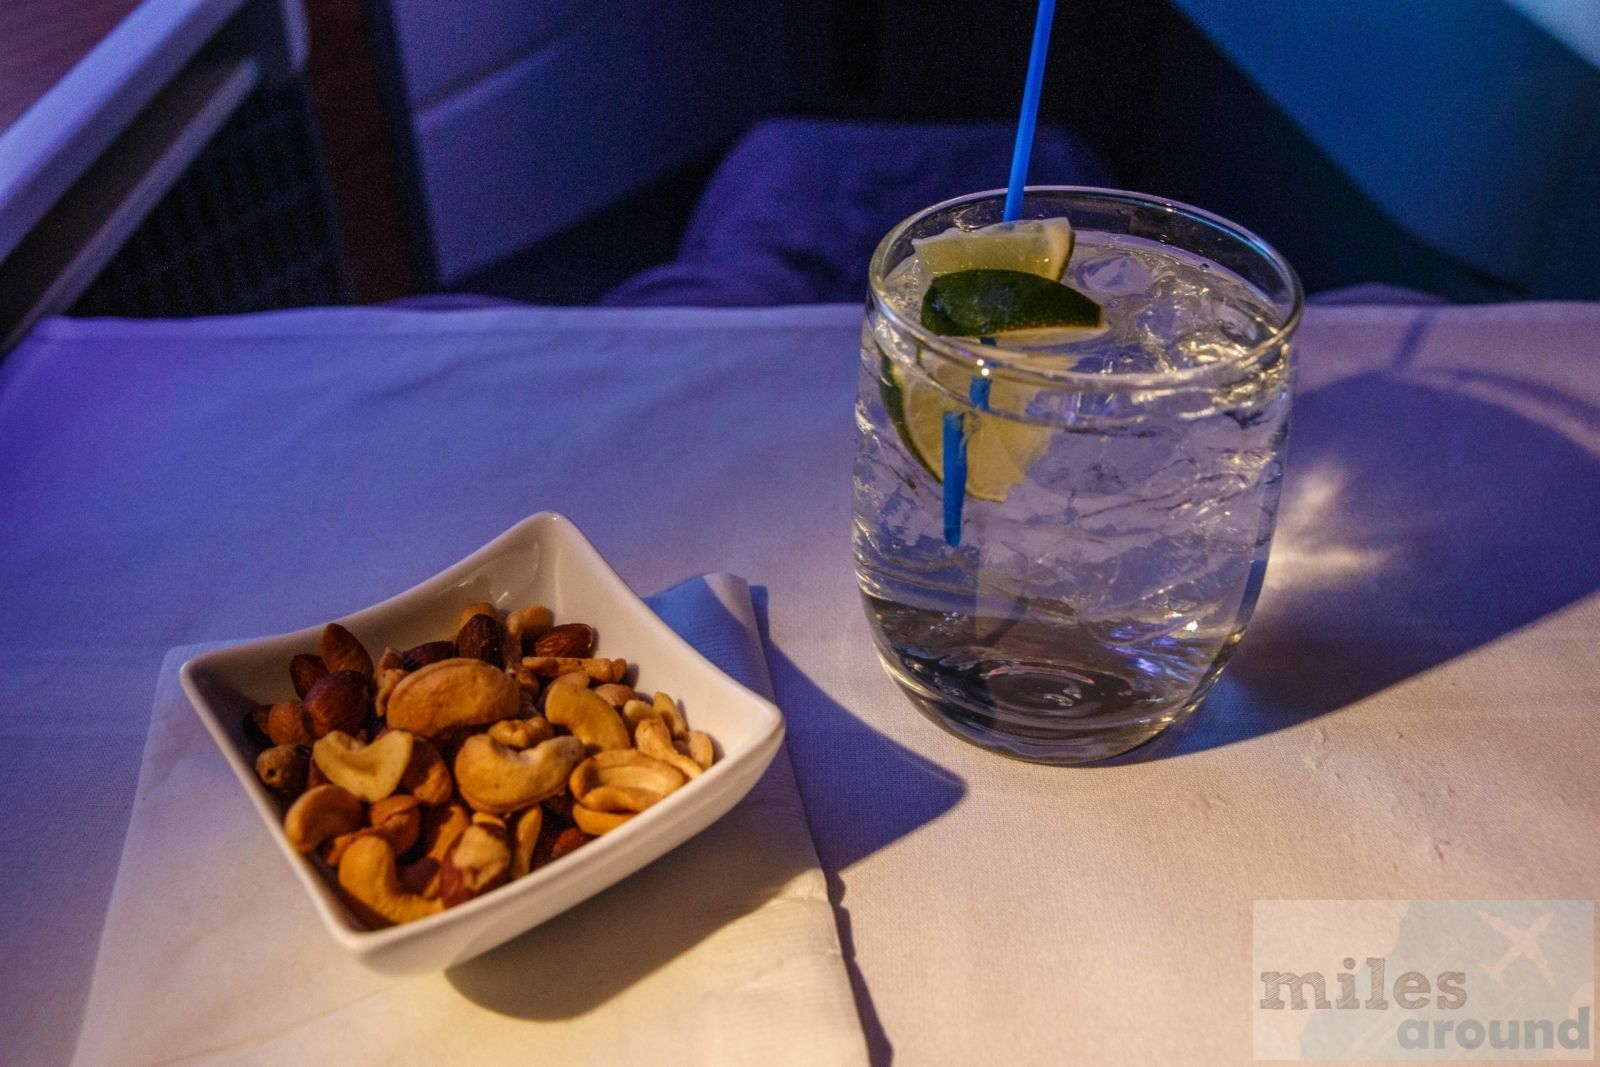 - Check more at https://www.miles-around.de/trip-reports/business-class/american-airlines-business-class-nach-london-heathrow/,  #AmericanAirlines #Boeing777-300ER #BusinessClass #GinTonic #WLAN